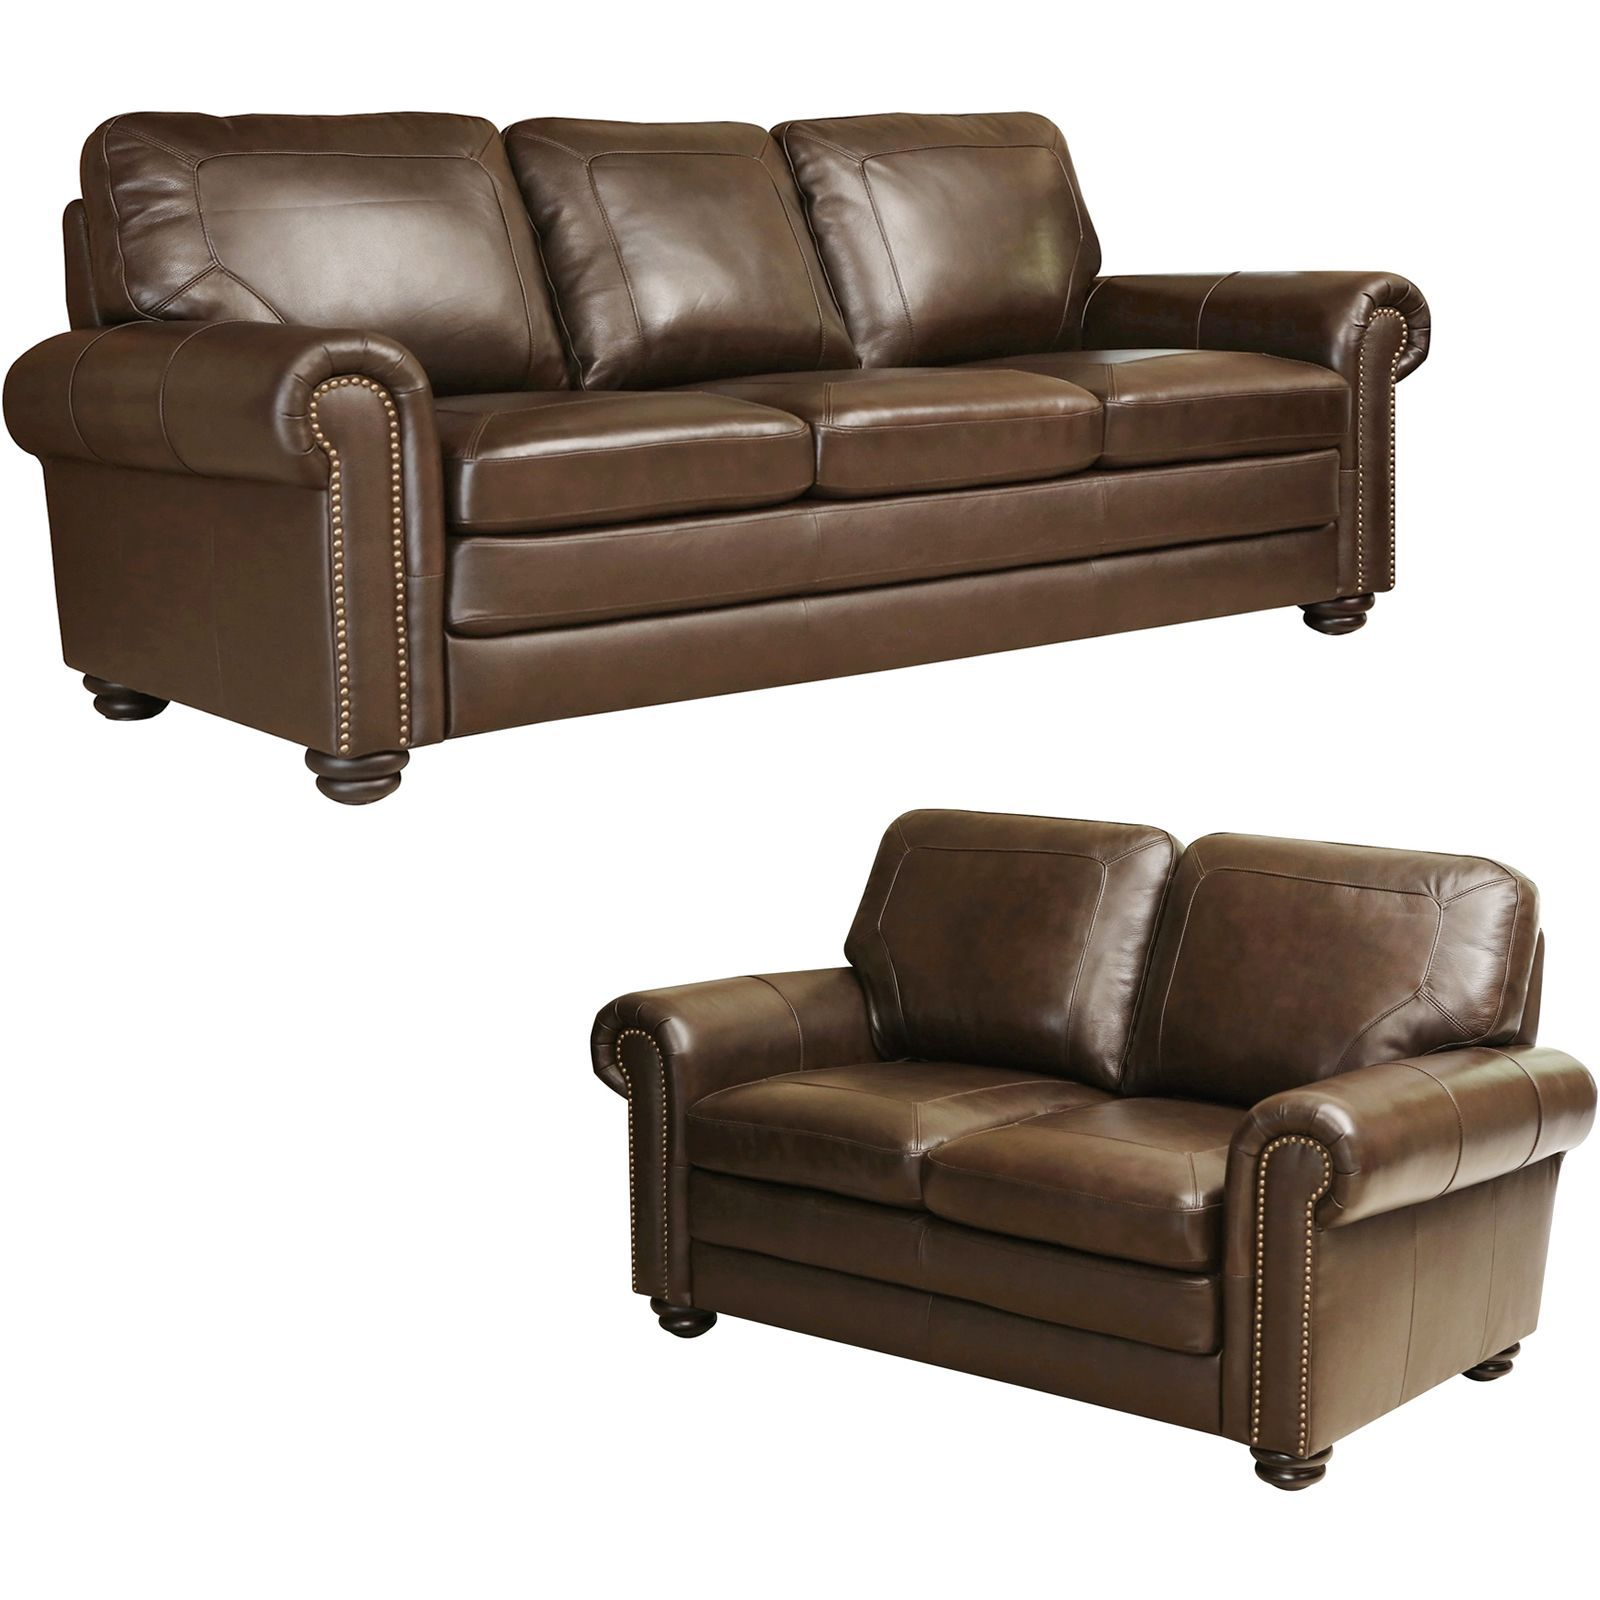 Abbyson Living Bradford Top Grain Leather Sofa and Loveseat Brown